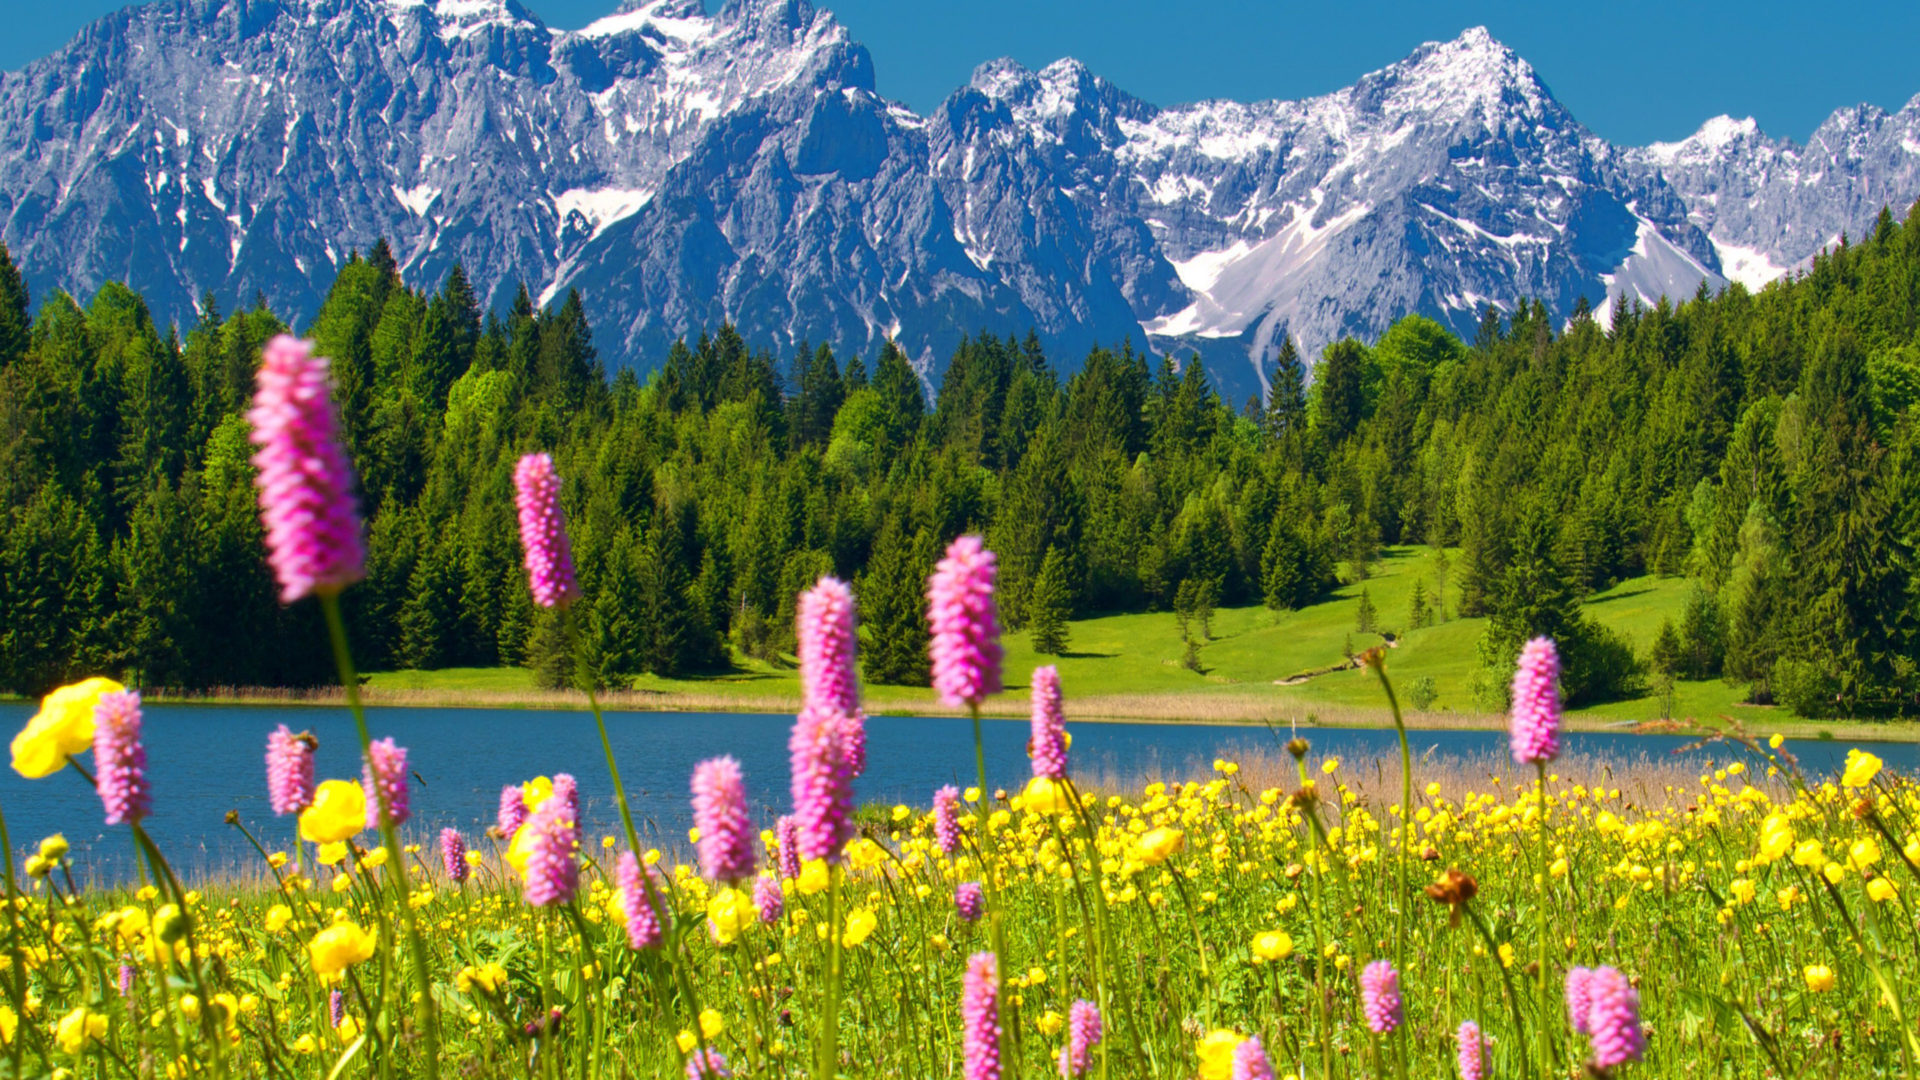 Majestic Fall Wallpaper Alps Snowy Mountain Peaks Blue Sky Green Forest With Trees